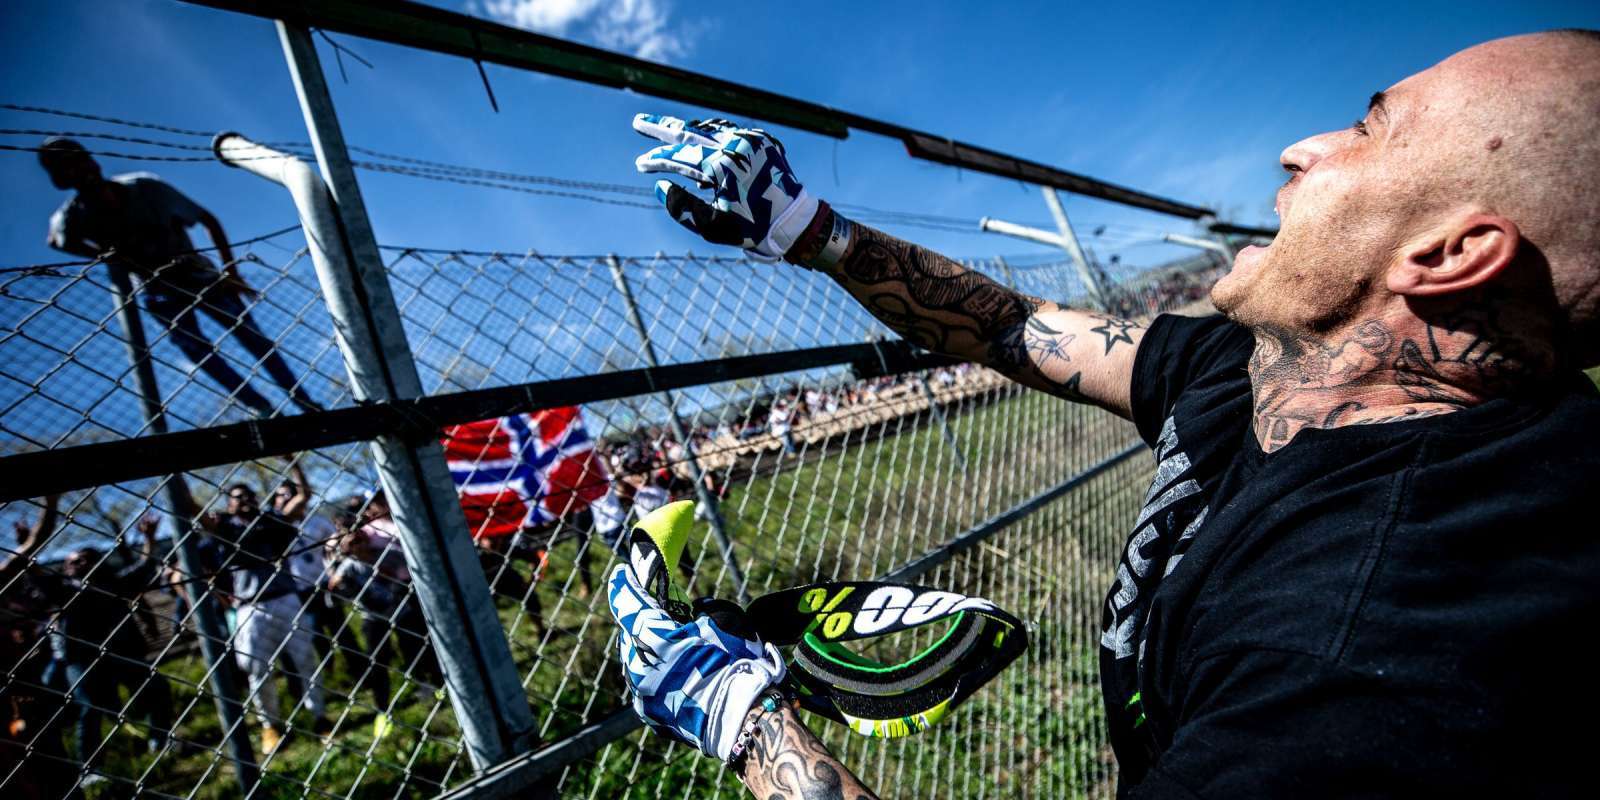 Sunday images from the 2018 World RX of Spain